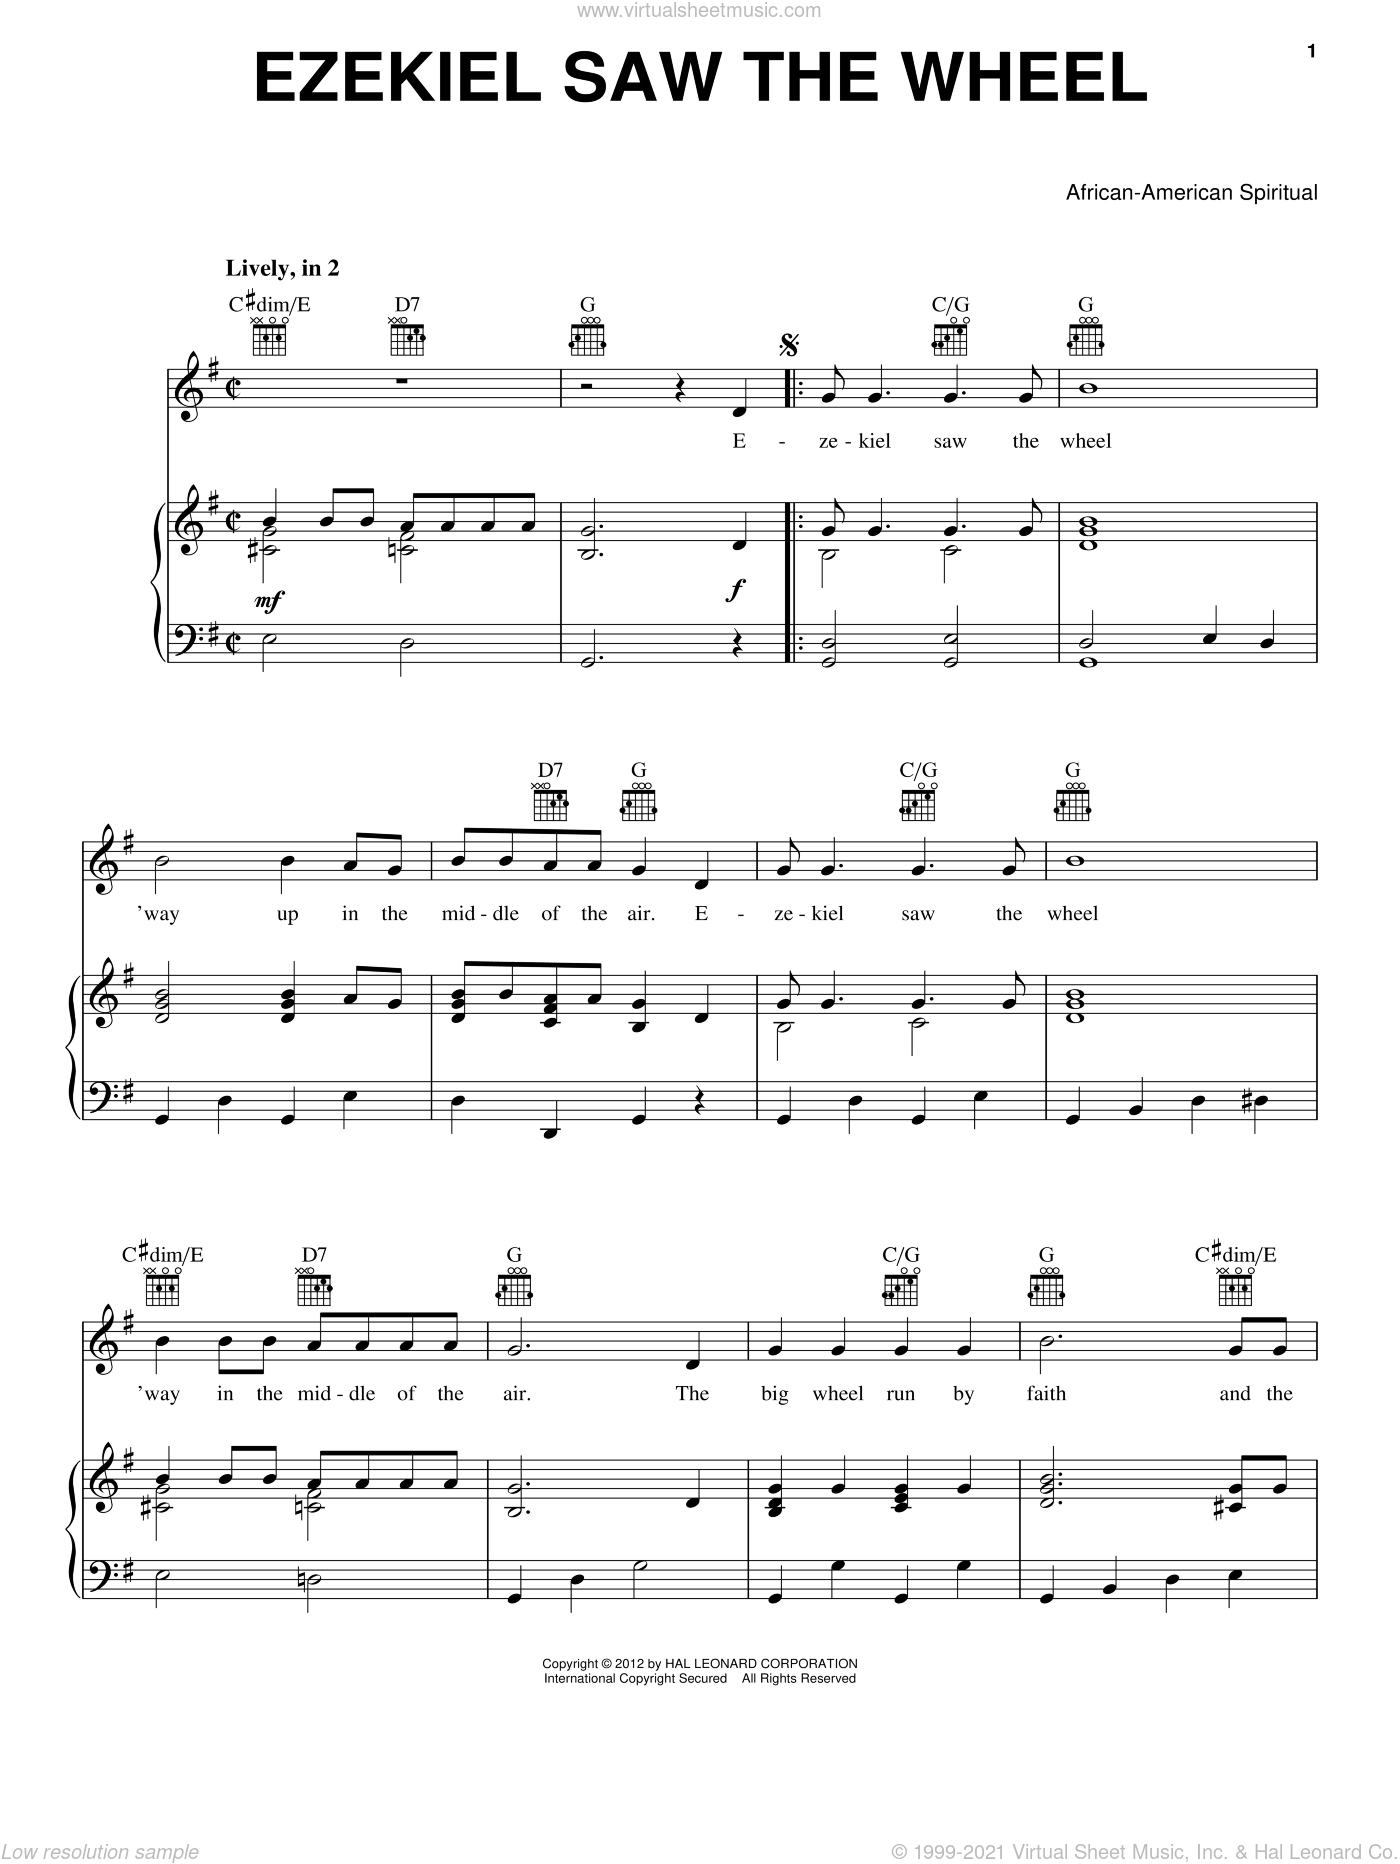 Ezekiel Saw The Wheel sheet music for voice, piano or guitar, intermediate skill level